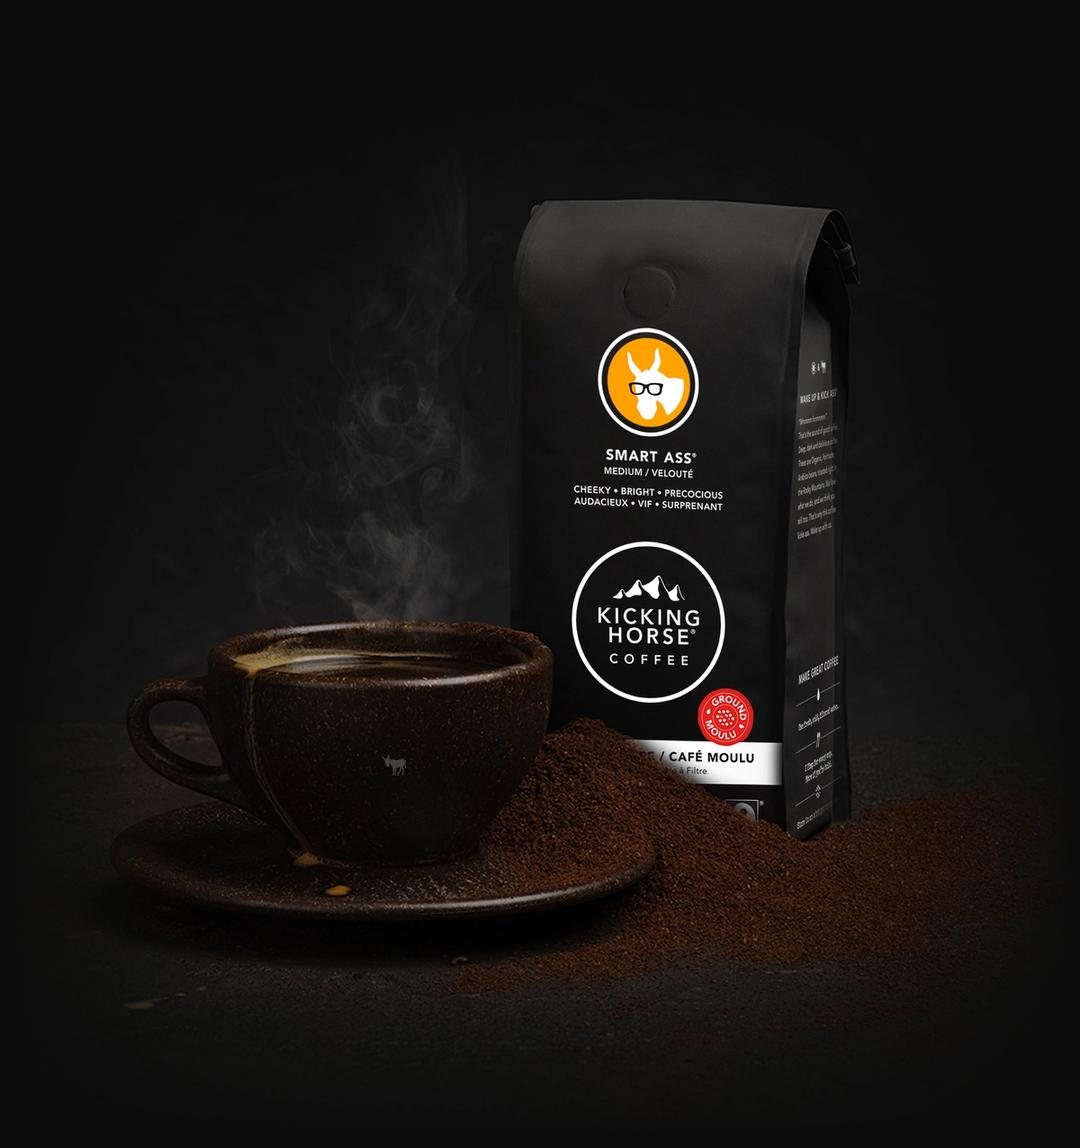 Smart Ass ground coffee bag with cup of coffee and coffee grounds